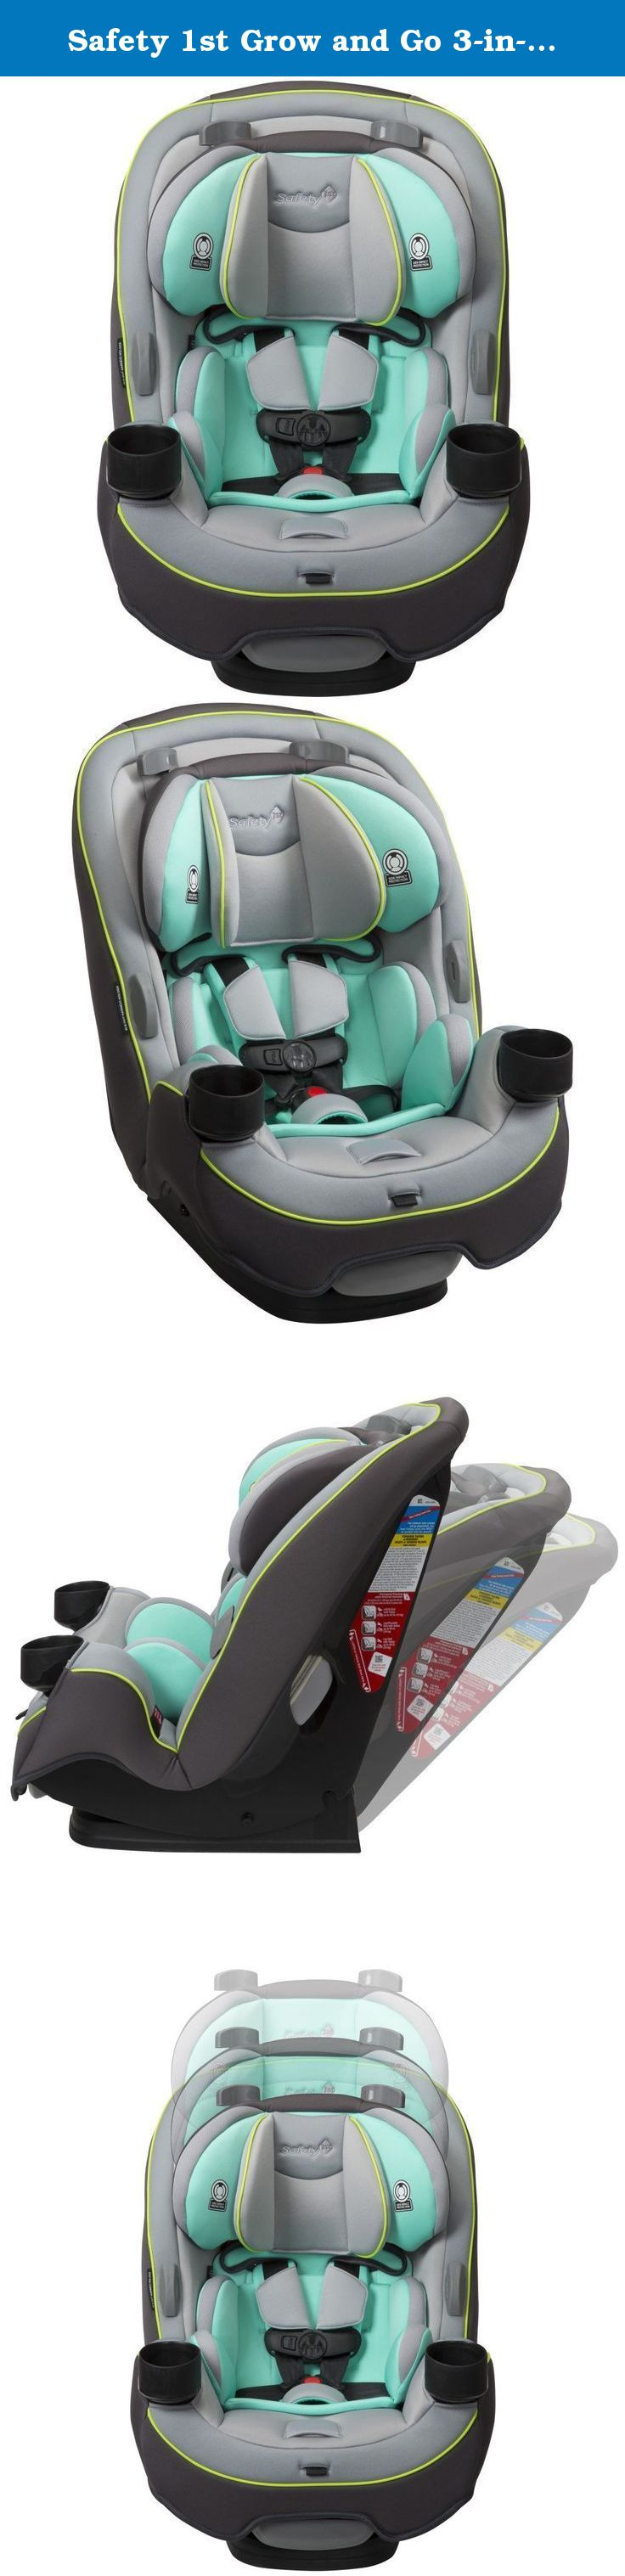 Safety 1st Grow and Go 3-in-1 Convertible Car Seat, Vitamint. Get ...